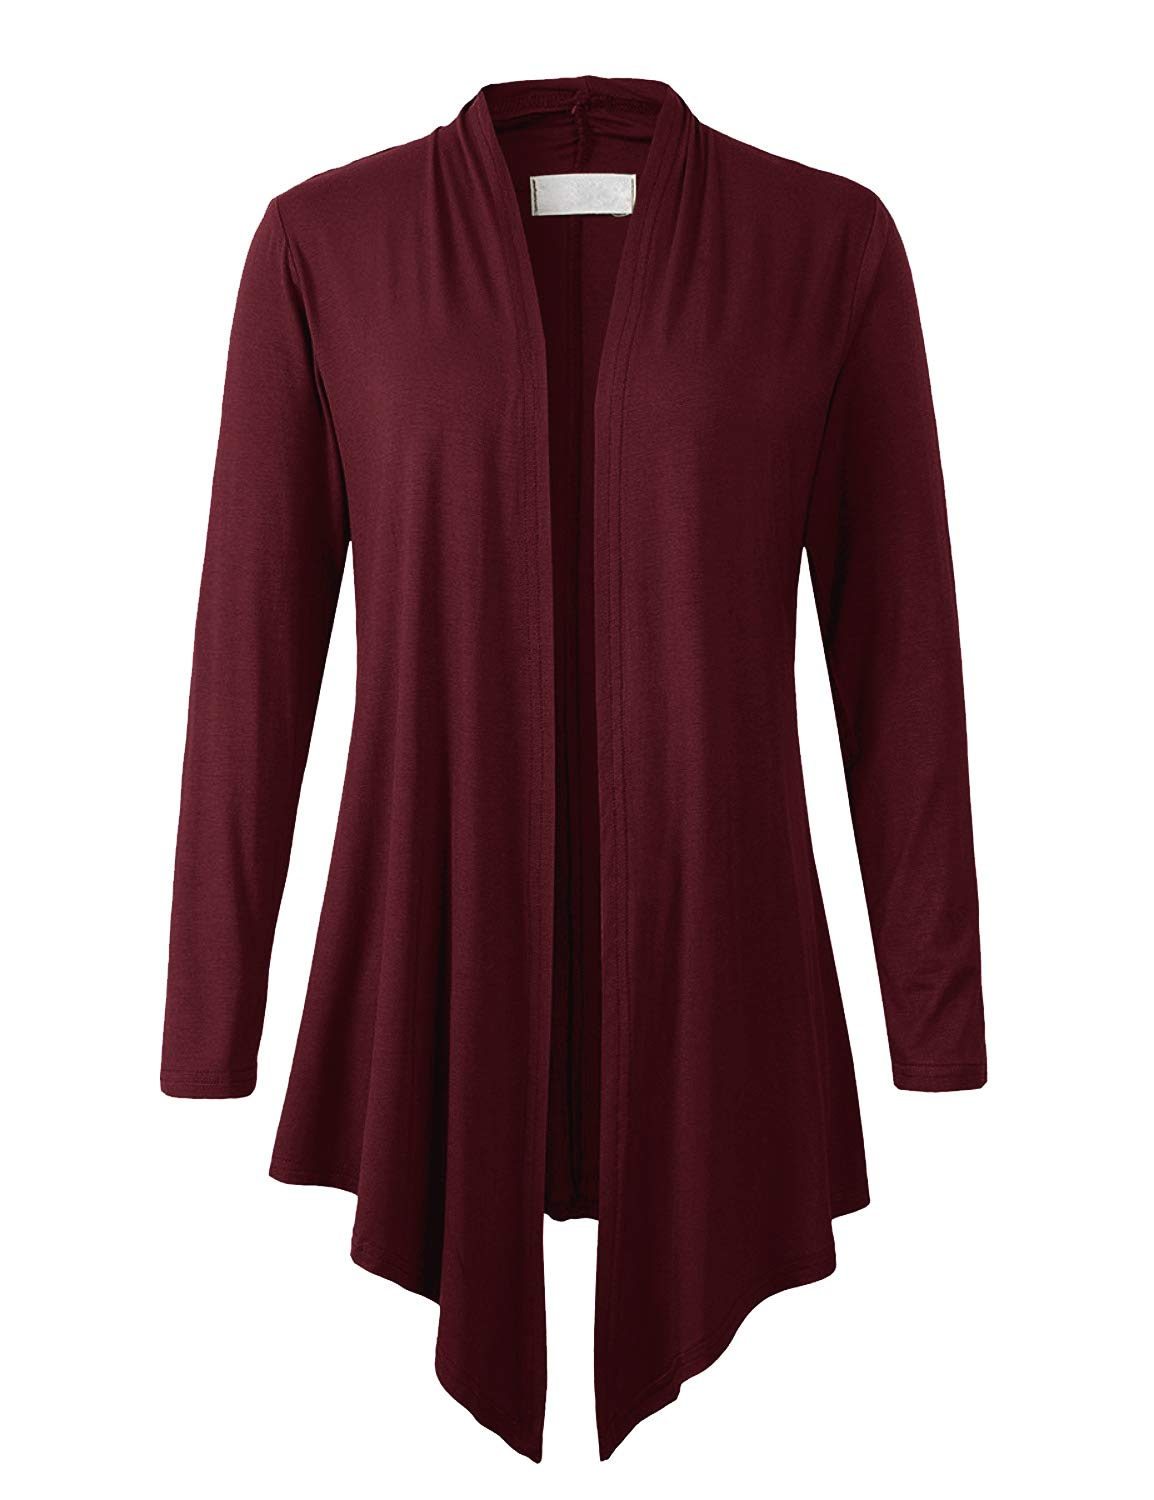 Eanklosco Women's Long Sleeve Drape Open-Front Cardigan Light Weight Irregular Hem Casual Tops Wine Red